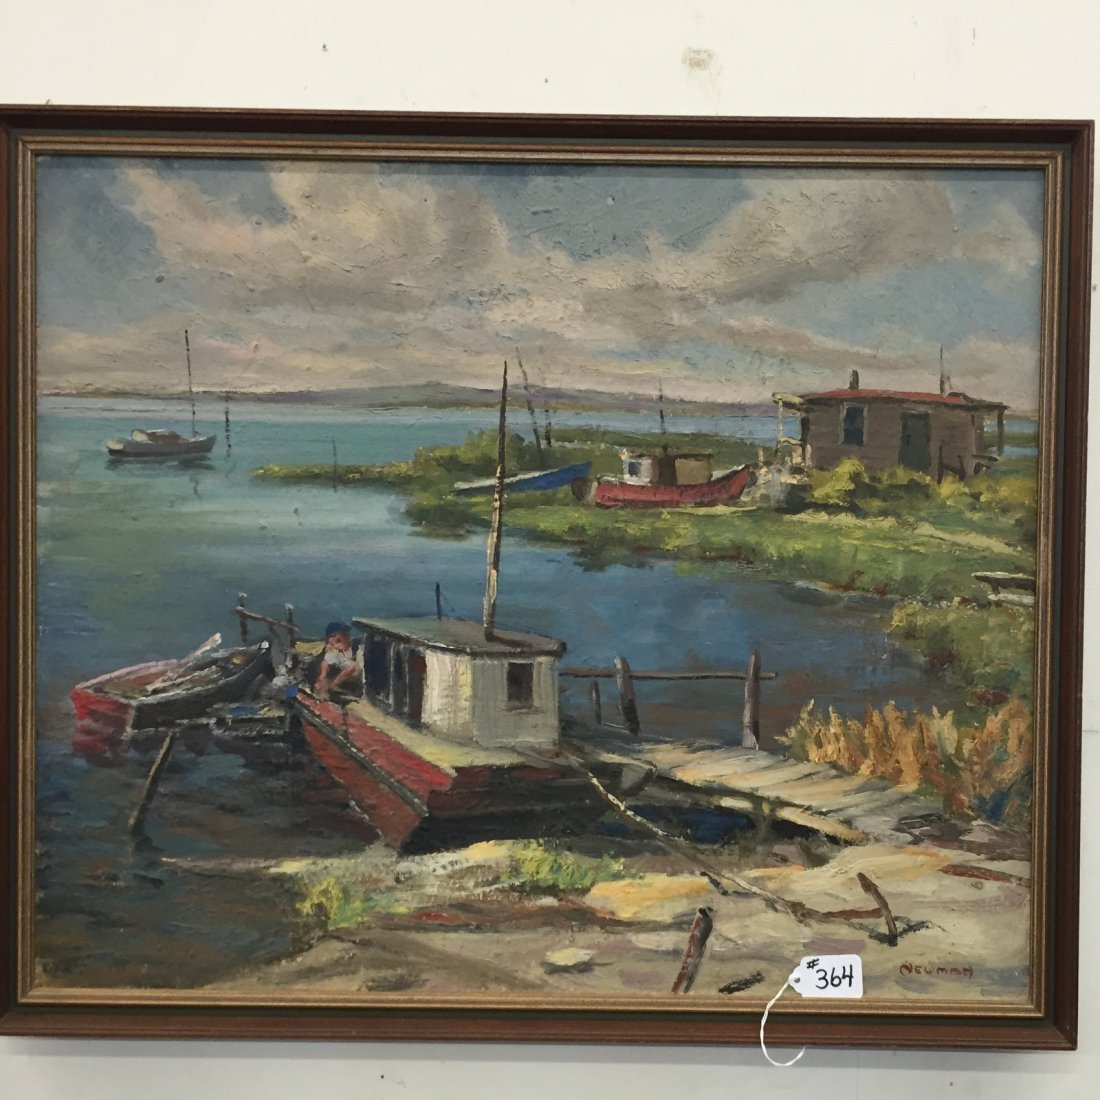 Oil on Artist Board Painting by Listed Artist, Newman.